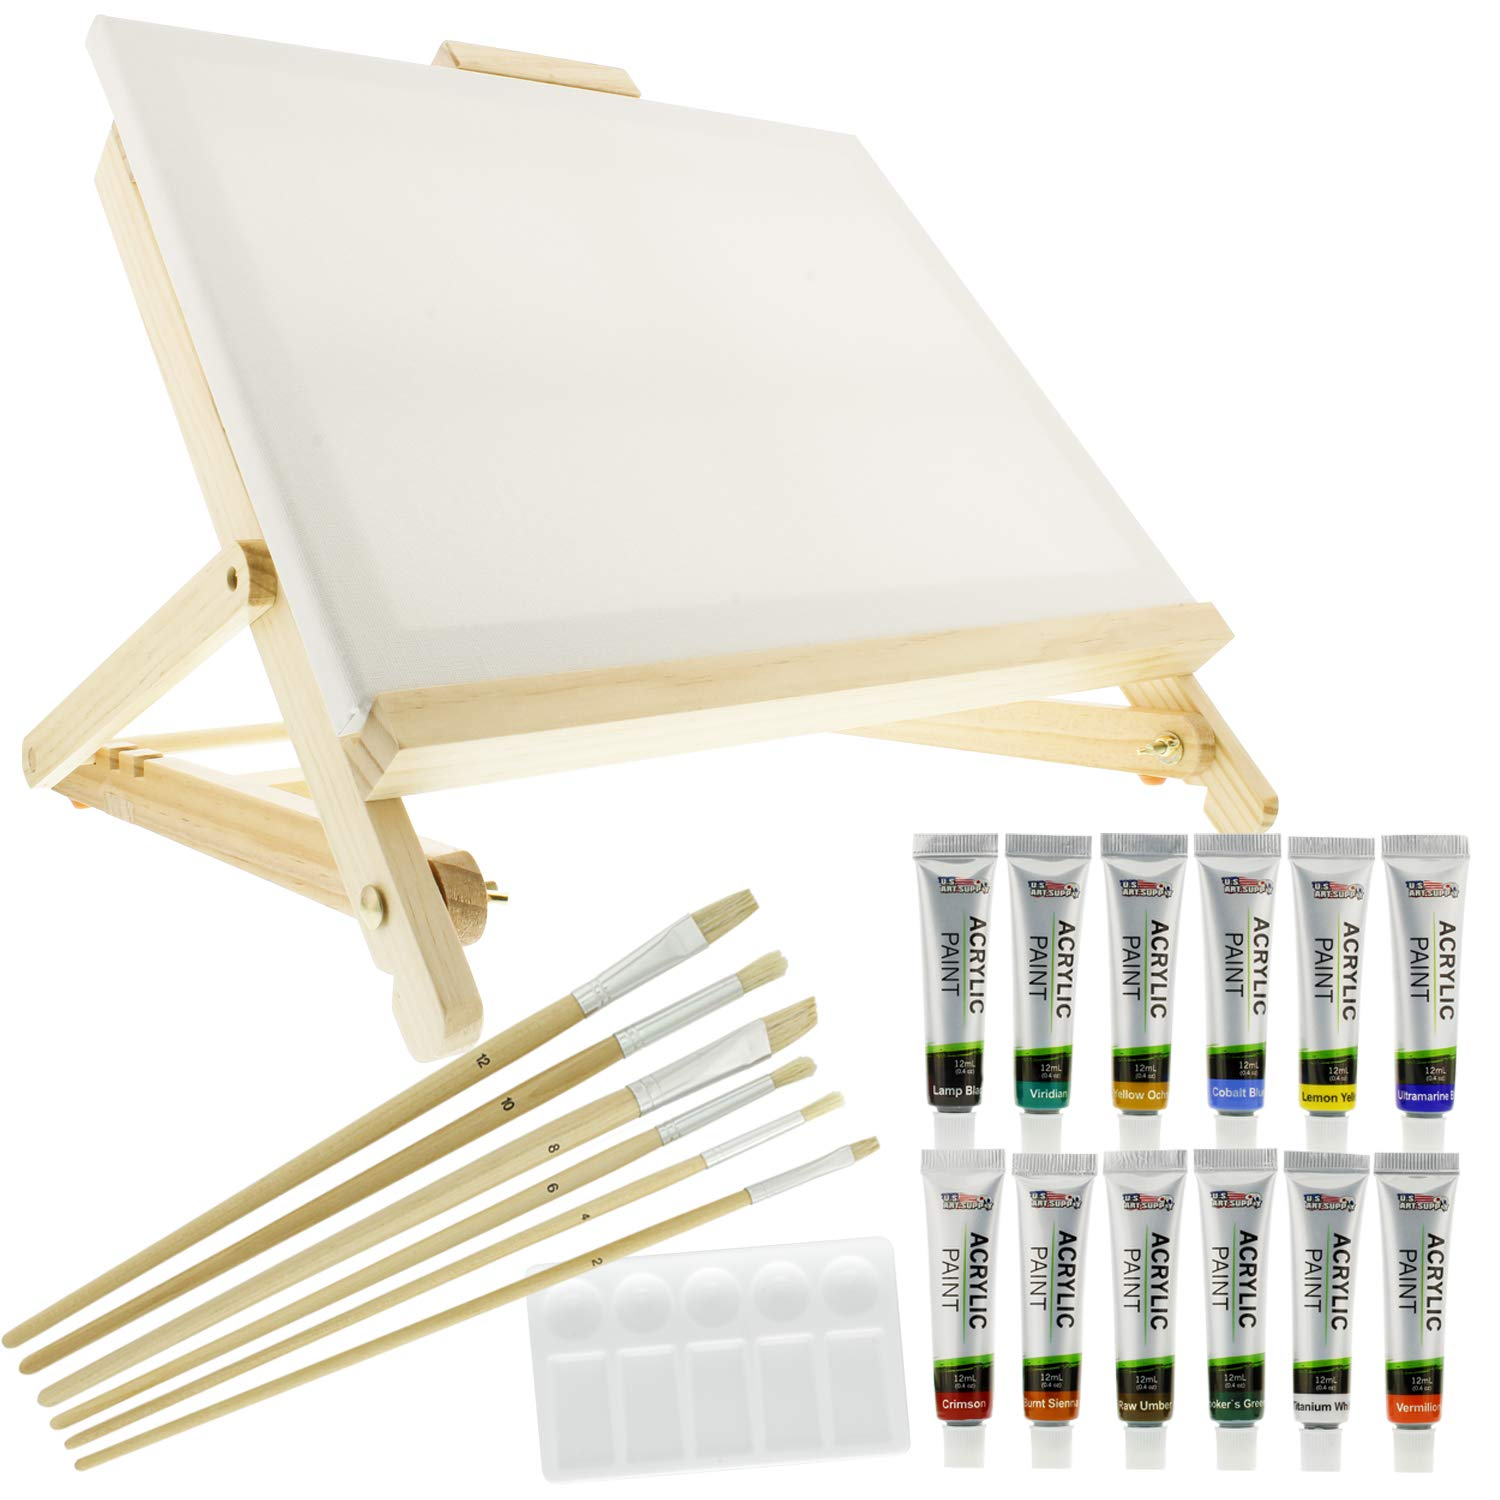 US Art Supply 21-Piece Acrylic Painting Table Easel Set with, 12-Tubes Acrylic Painting Colors, 11''x14'' Stretched Canvas, 6 Artist Brushes, Plastic Palette with 10 Wells by US Art Supply